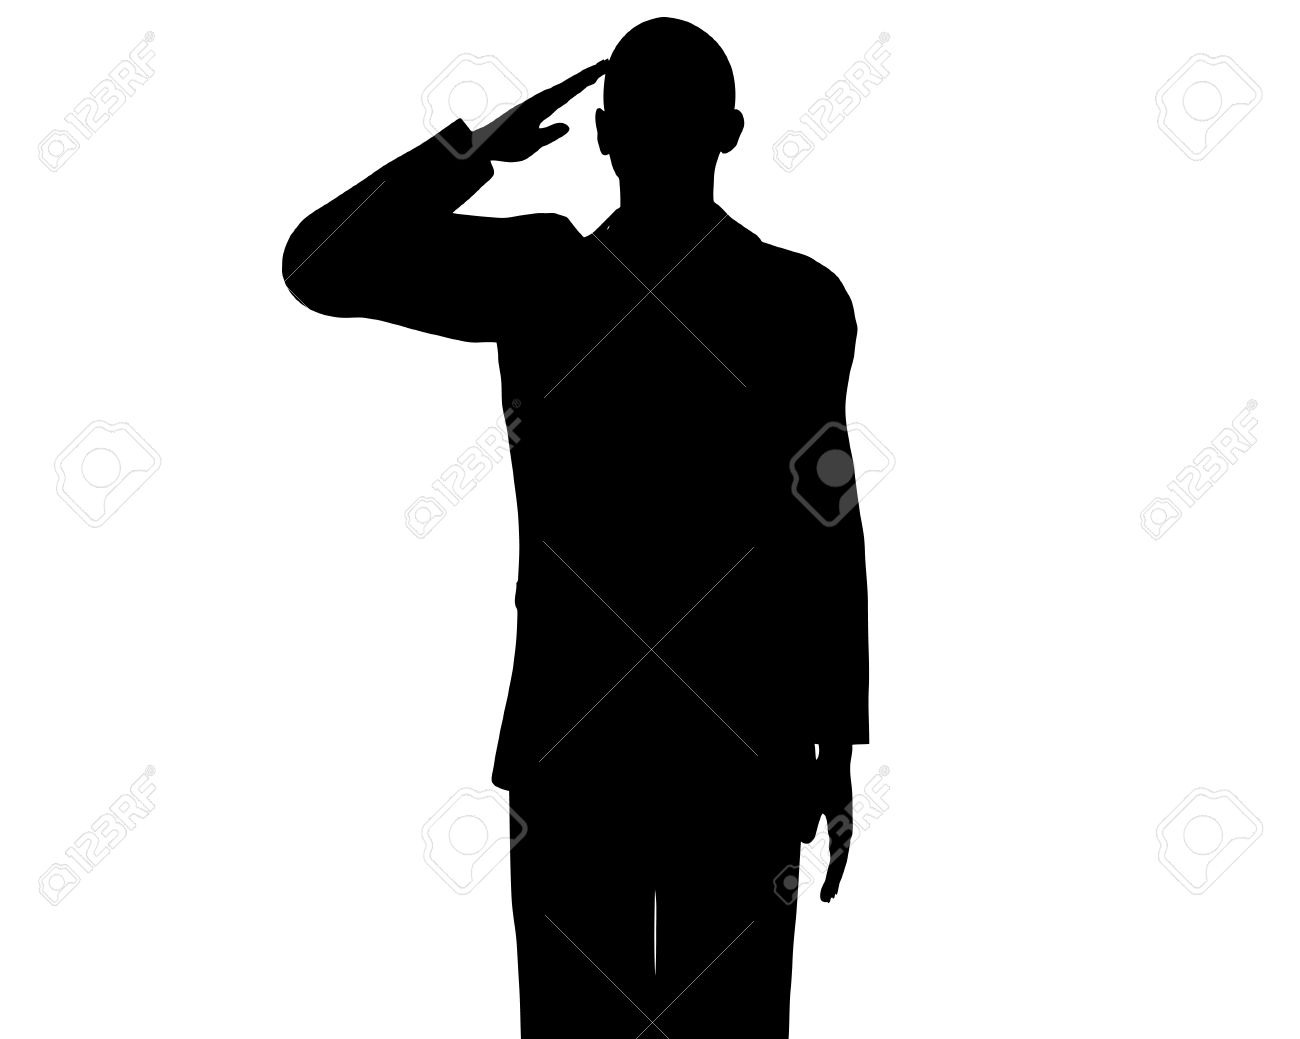 Barack Obama Silhouette Royalty Free Cliparts, Vectors, And Stock